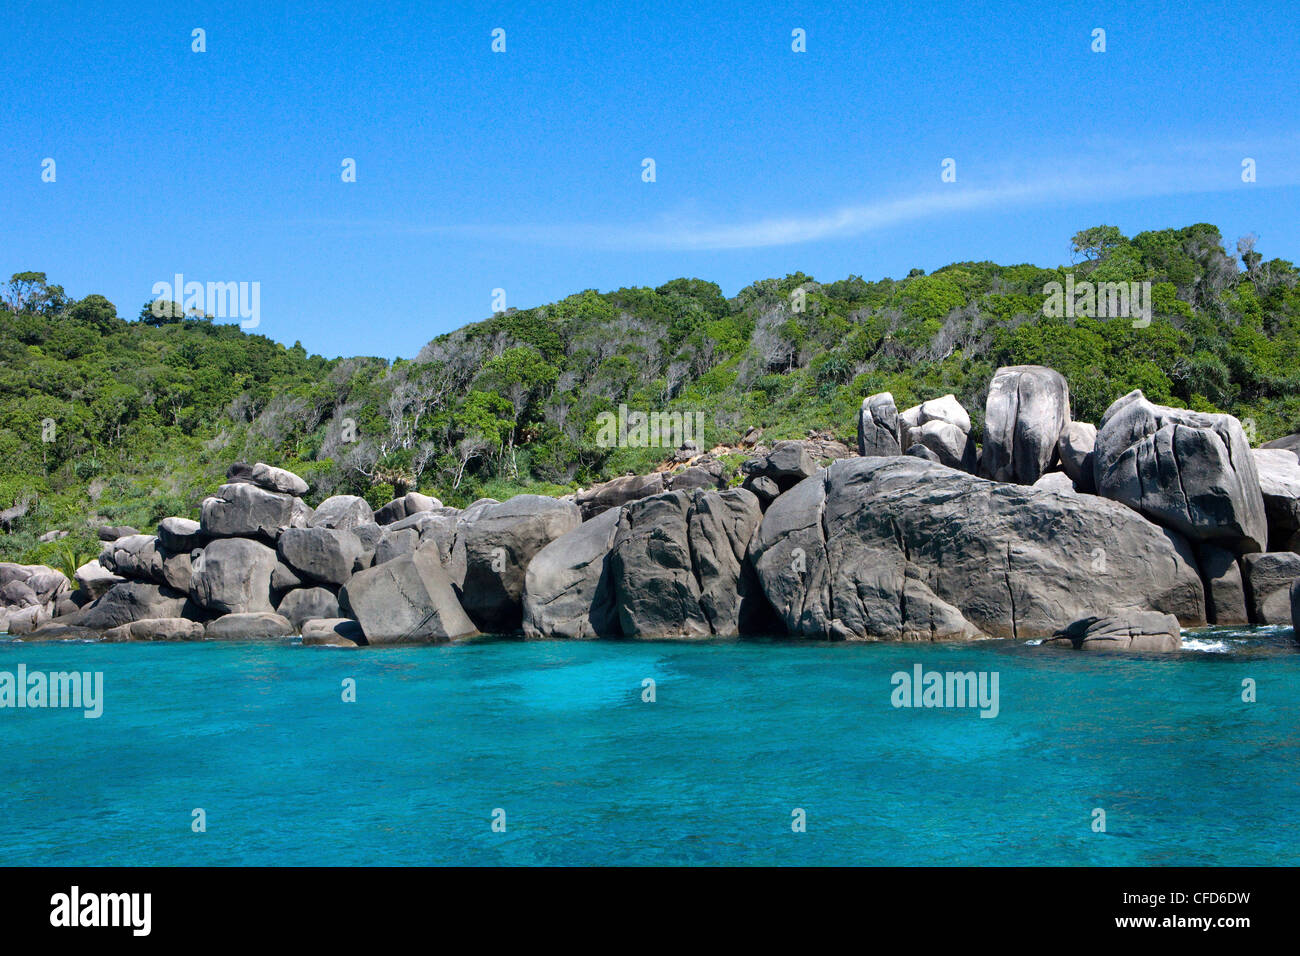 View onto rocks and rainforest on an island, Similan Islands, Andaman Sea, Thailand - Stock Image